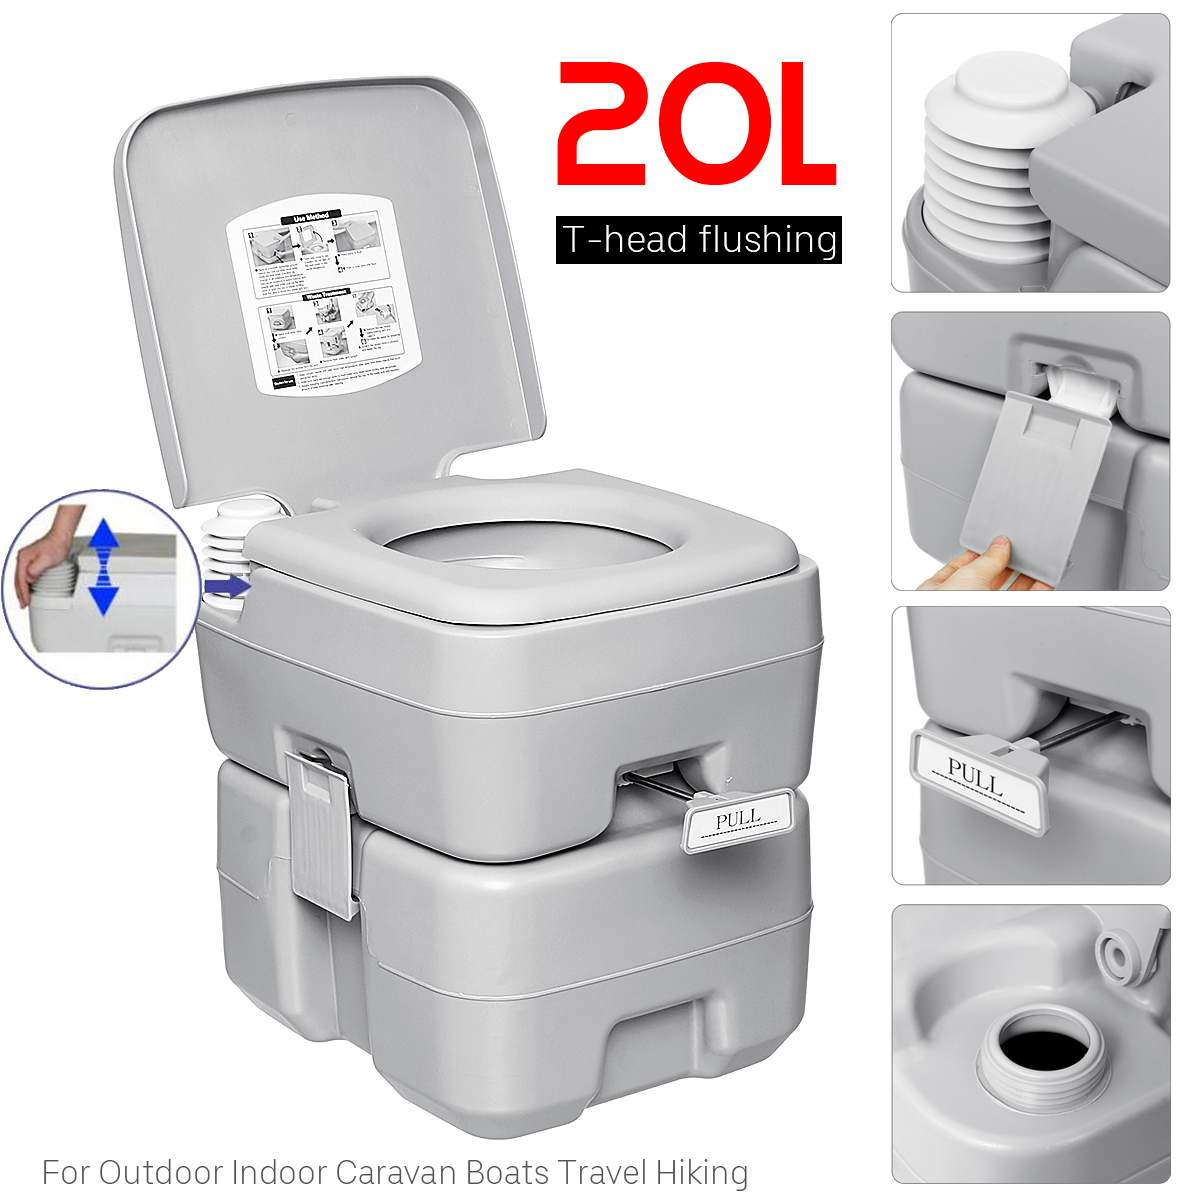 20L Outdoor Portable Camping Toilet Caravan Travel Camp Boating Fishing Flush